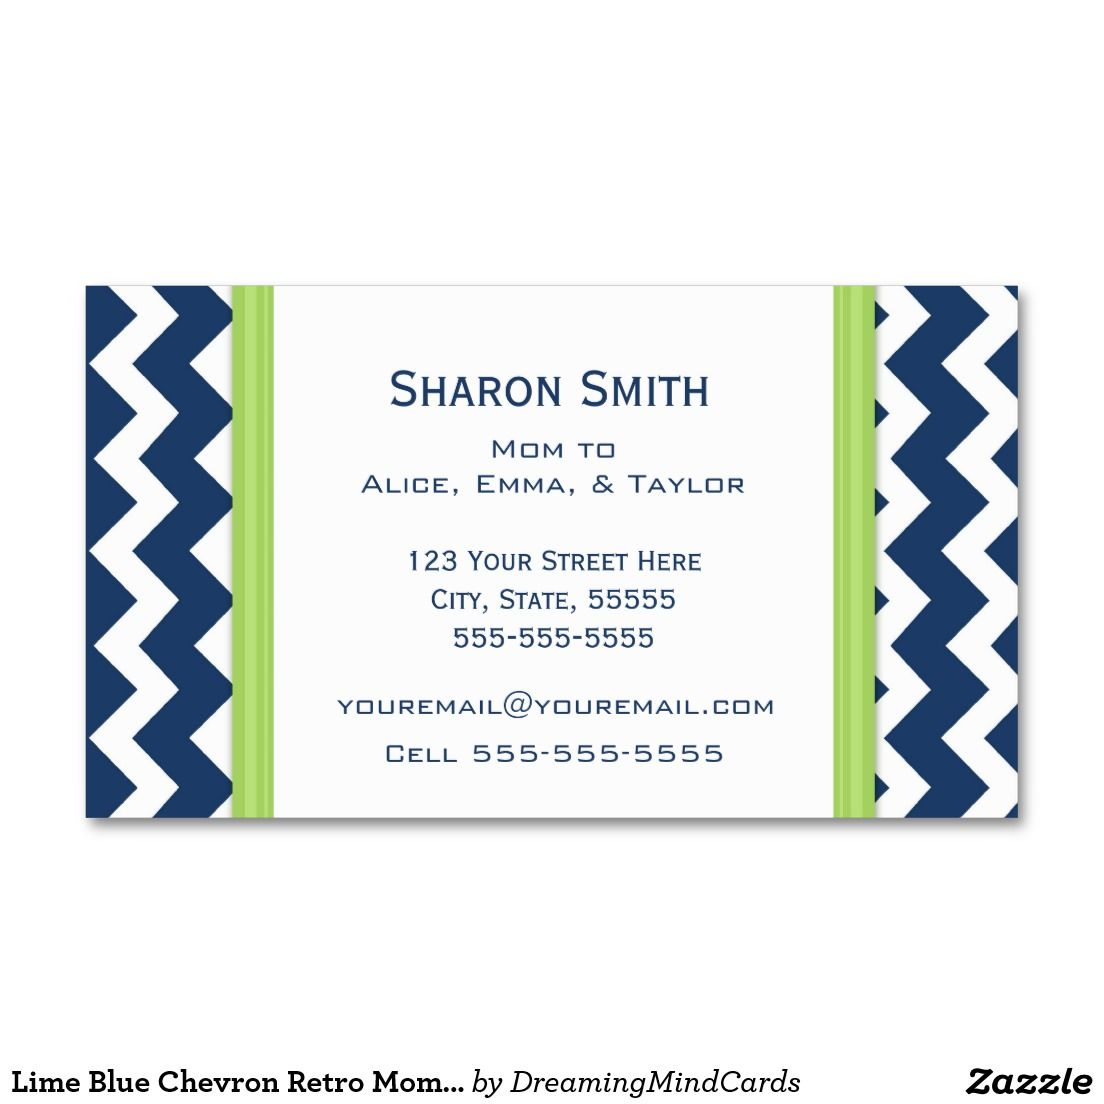 printable babysitting business cards - Google Search | Babysitting ...